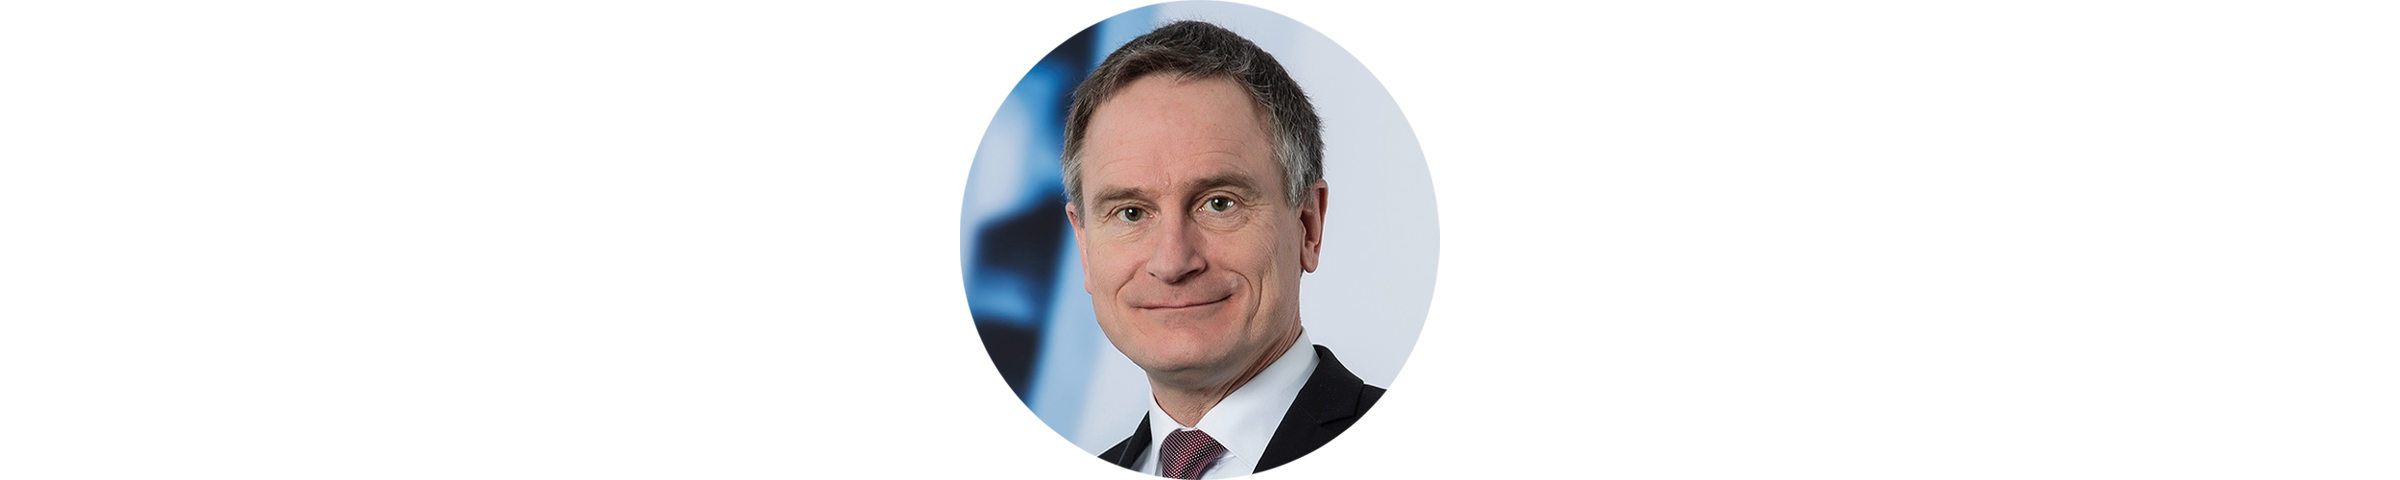 Prof. Dr.-Ing. Jörg Franke, Head of Chair for Manufacturing Automation and Production Systems (FAPS)